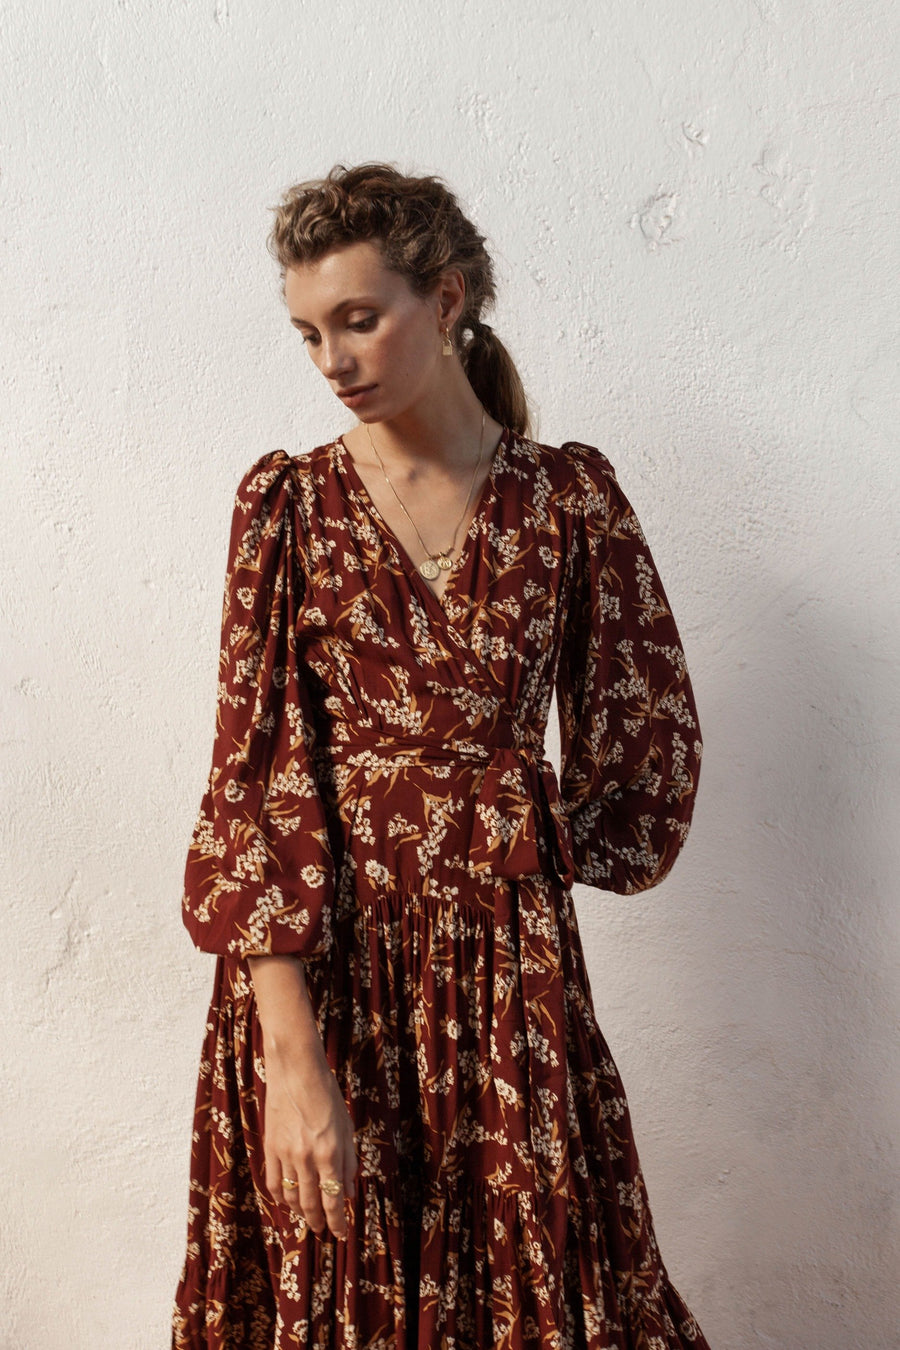 Bird & Kite - Brava Dress - Native Blooms